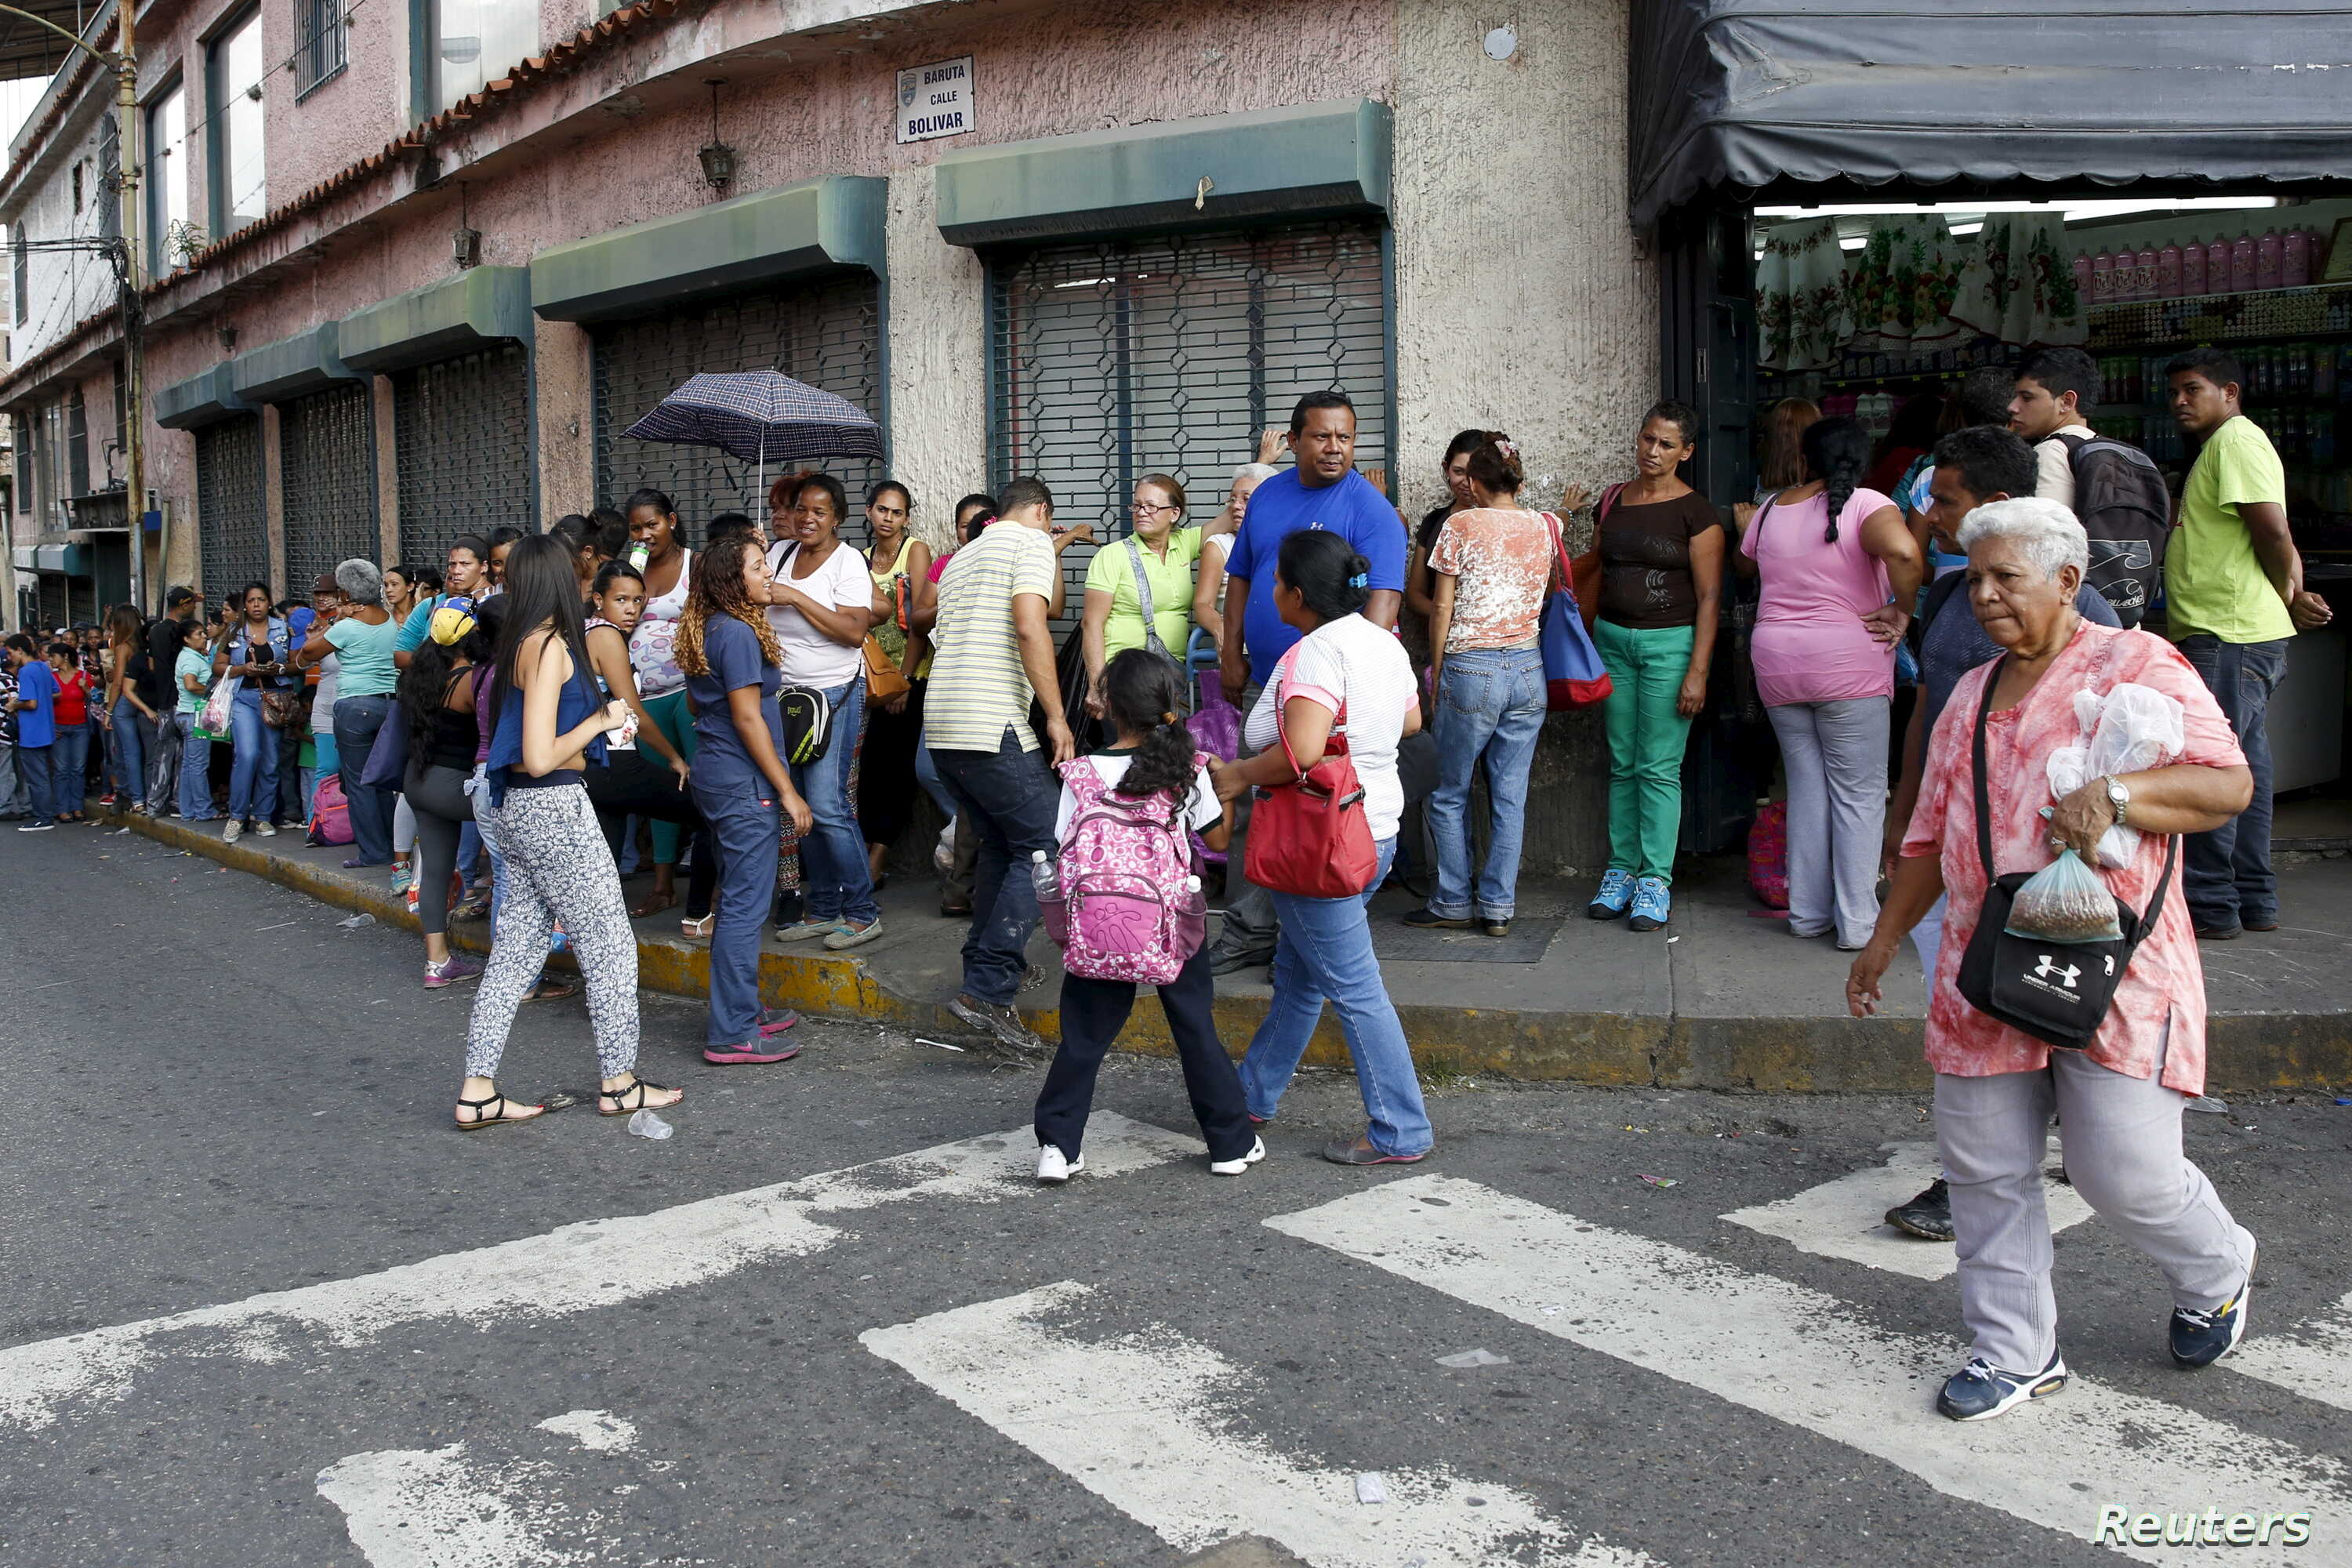 People wait in a line to buy staple goods outside a supermarket in Caracas, Venezuela, Oct. 20, 2015.